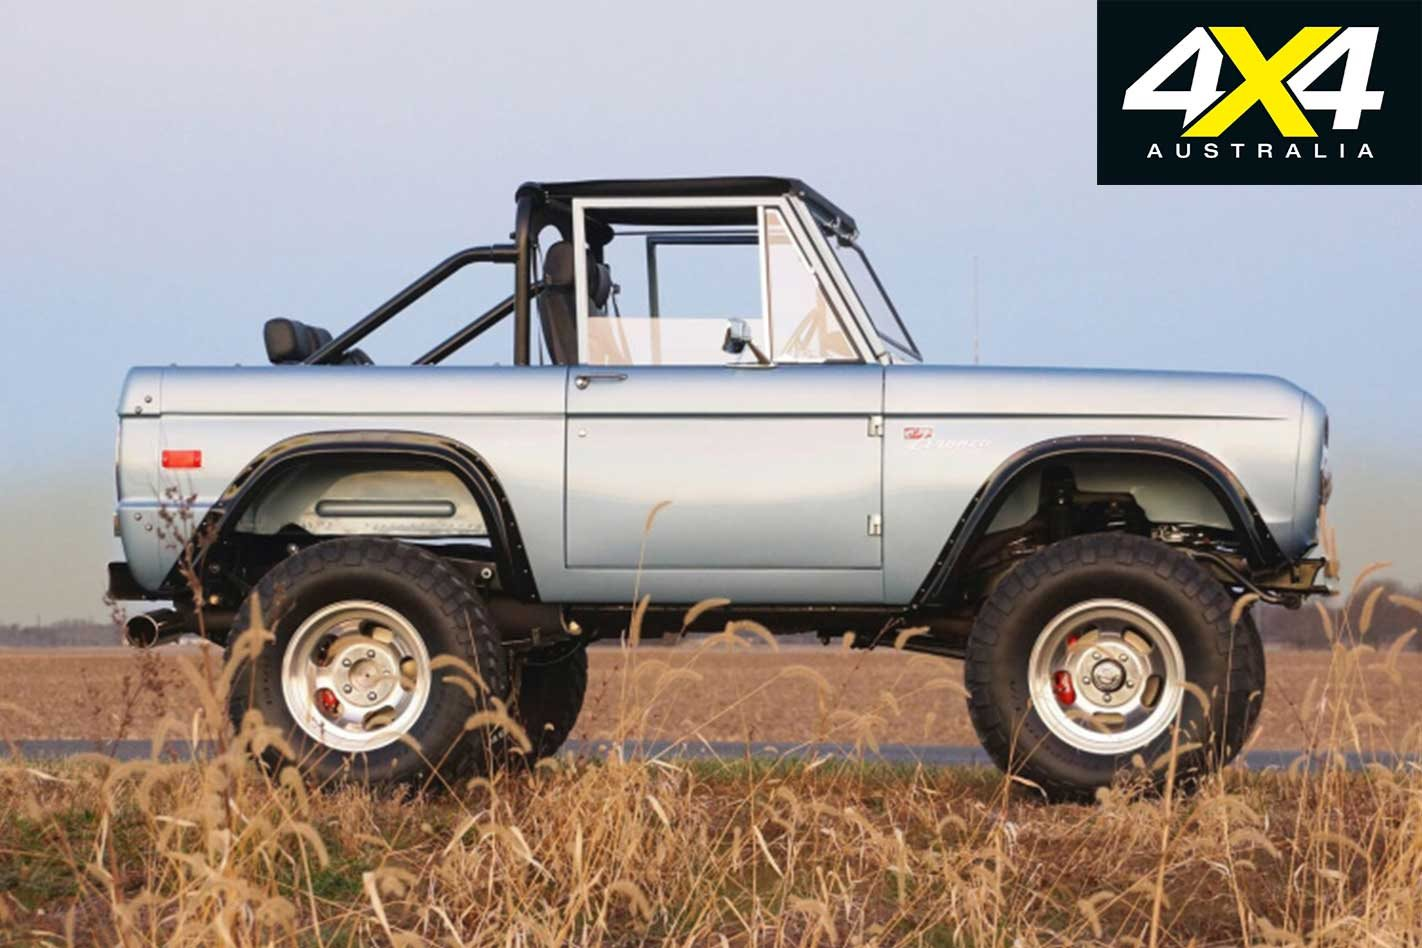 Gateway Bronco To Build As New 1966 77 Broncos Under License From Ford